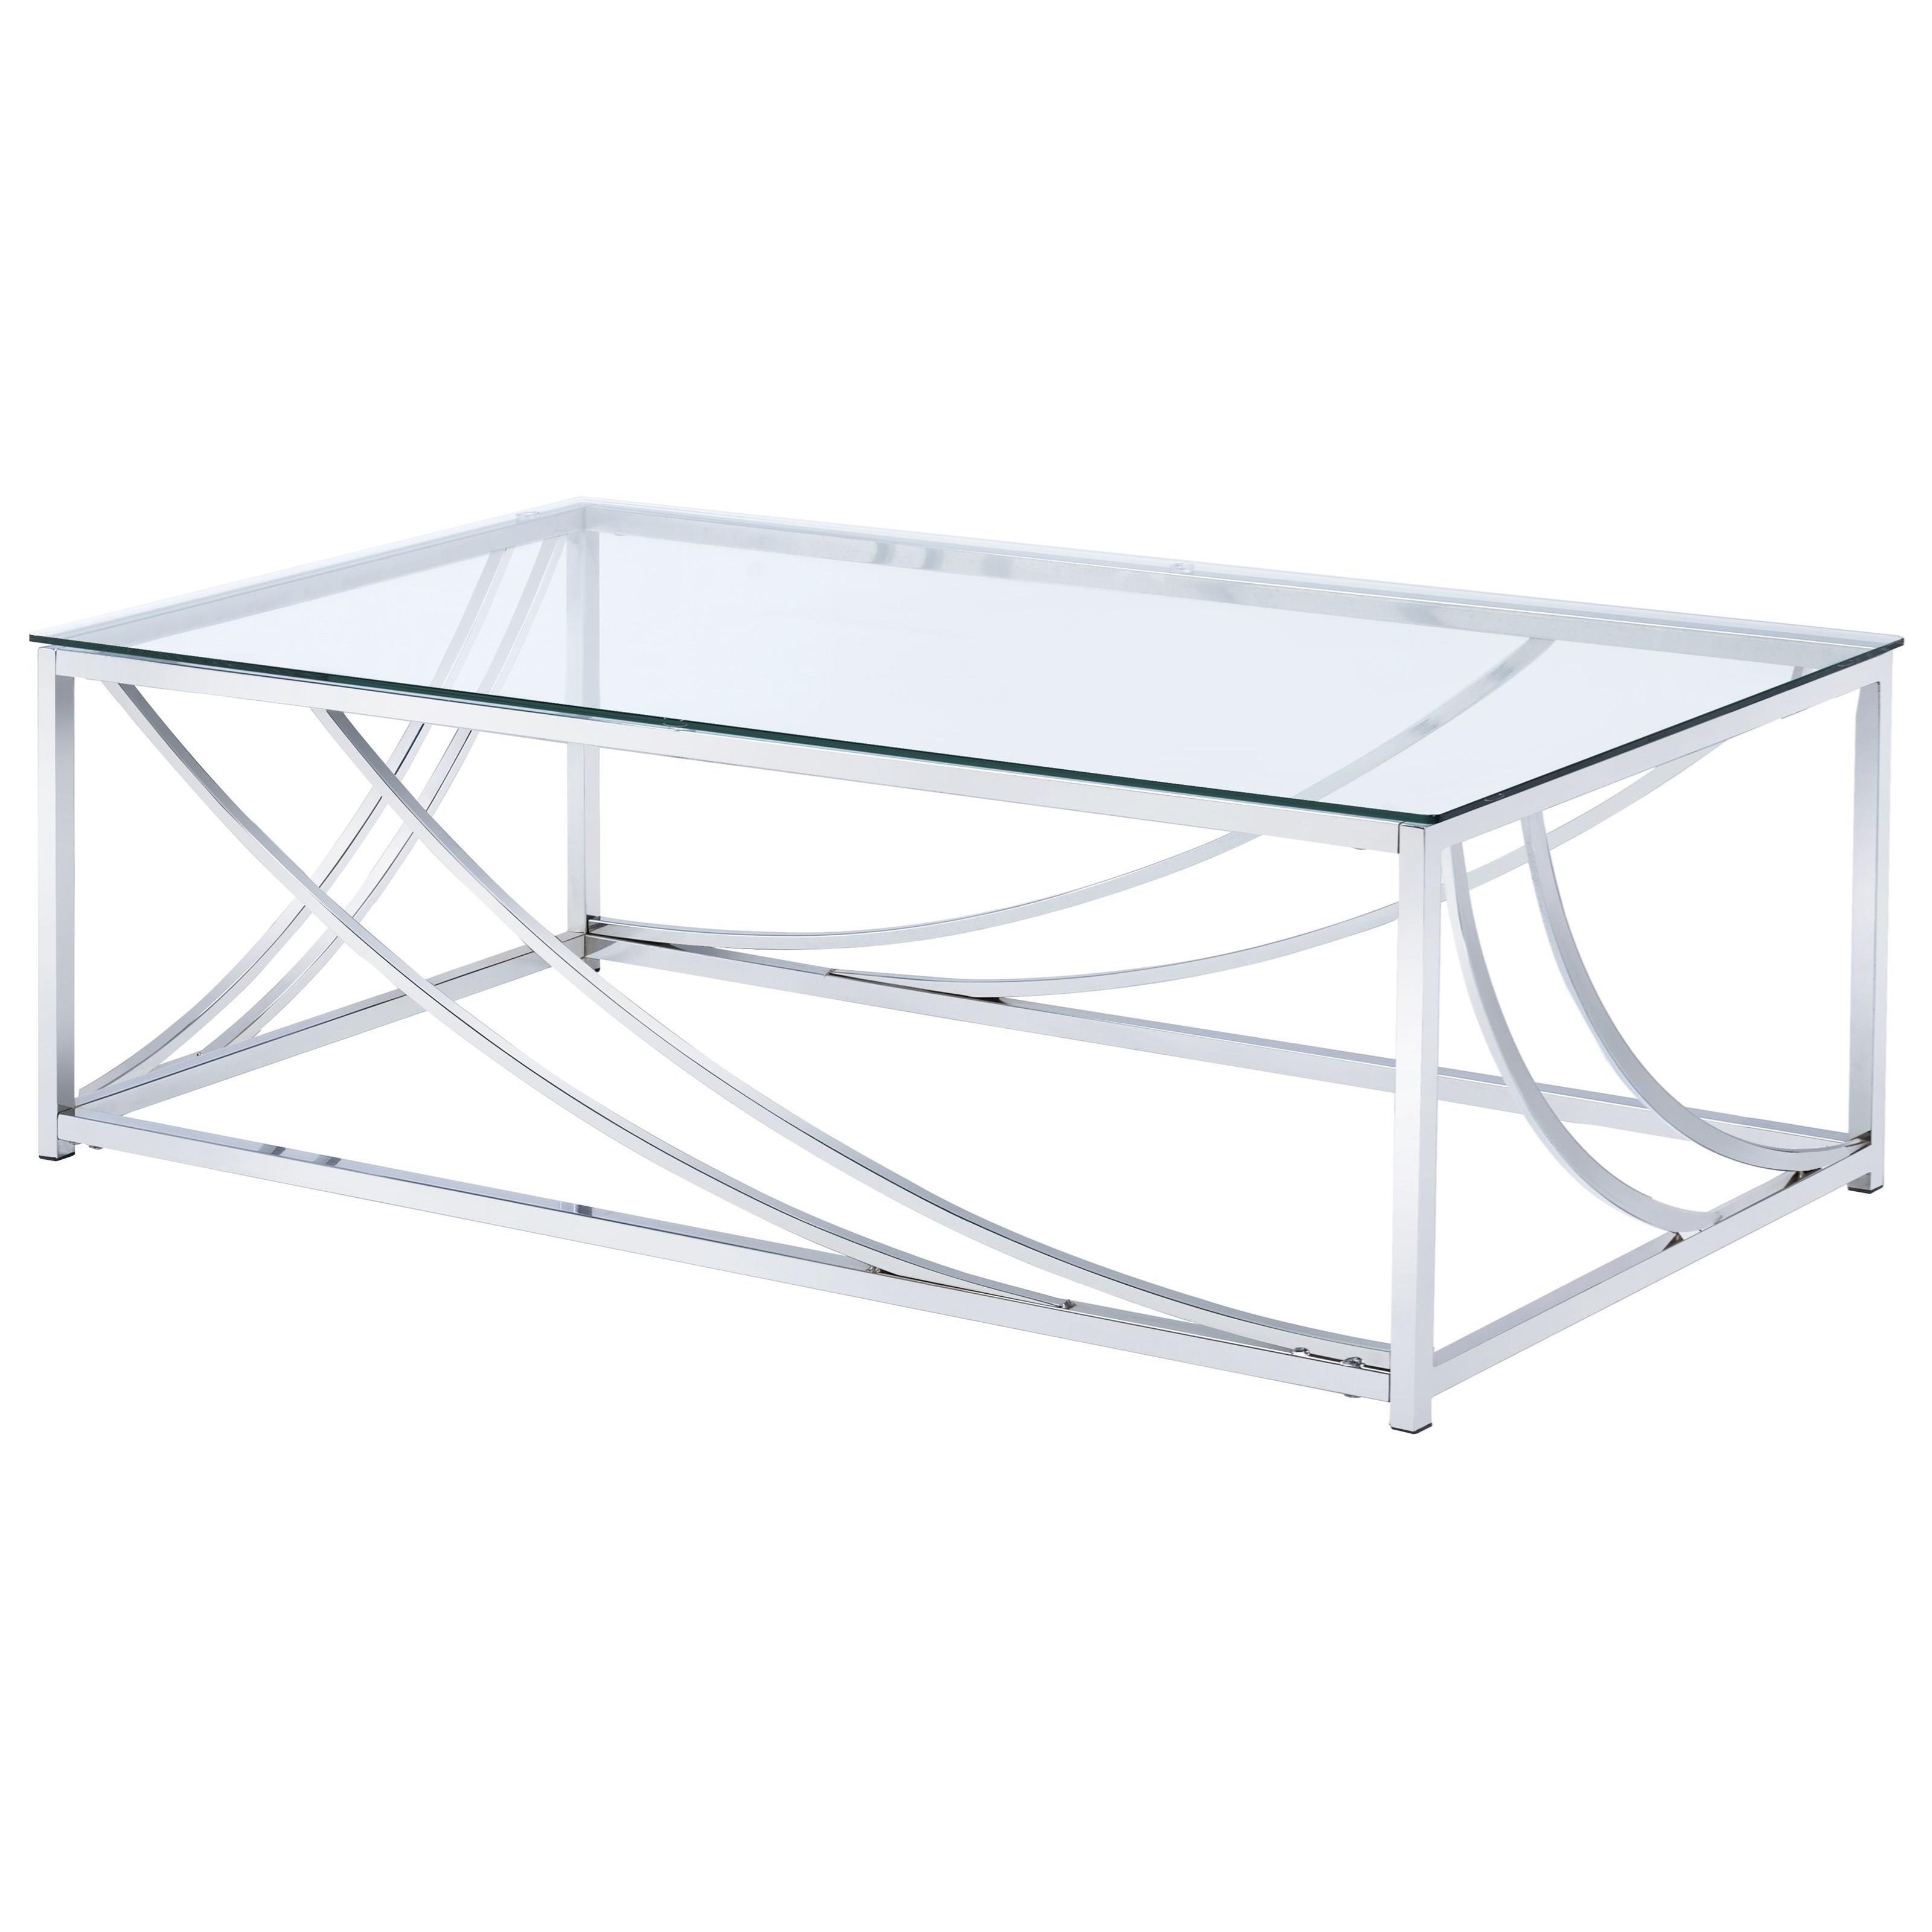 720498 modern glass top cocktail table